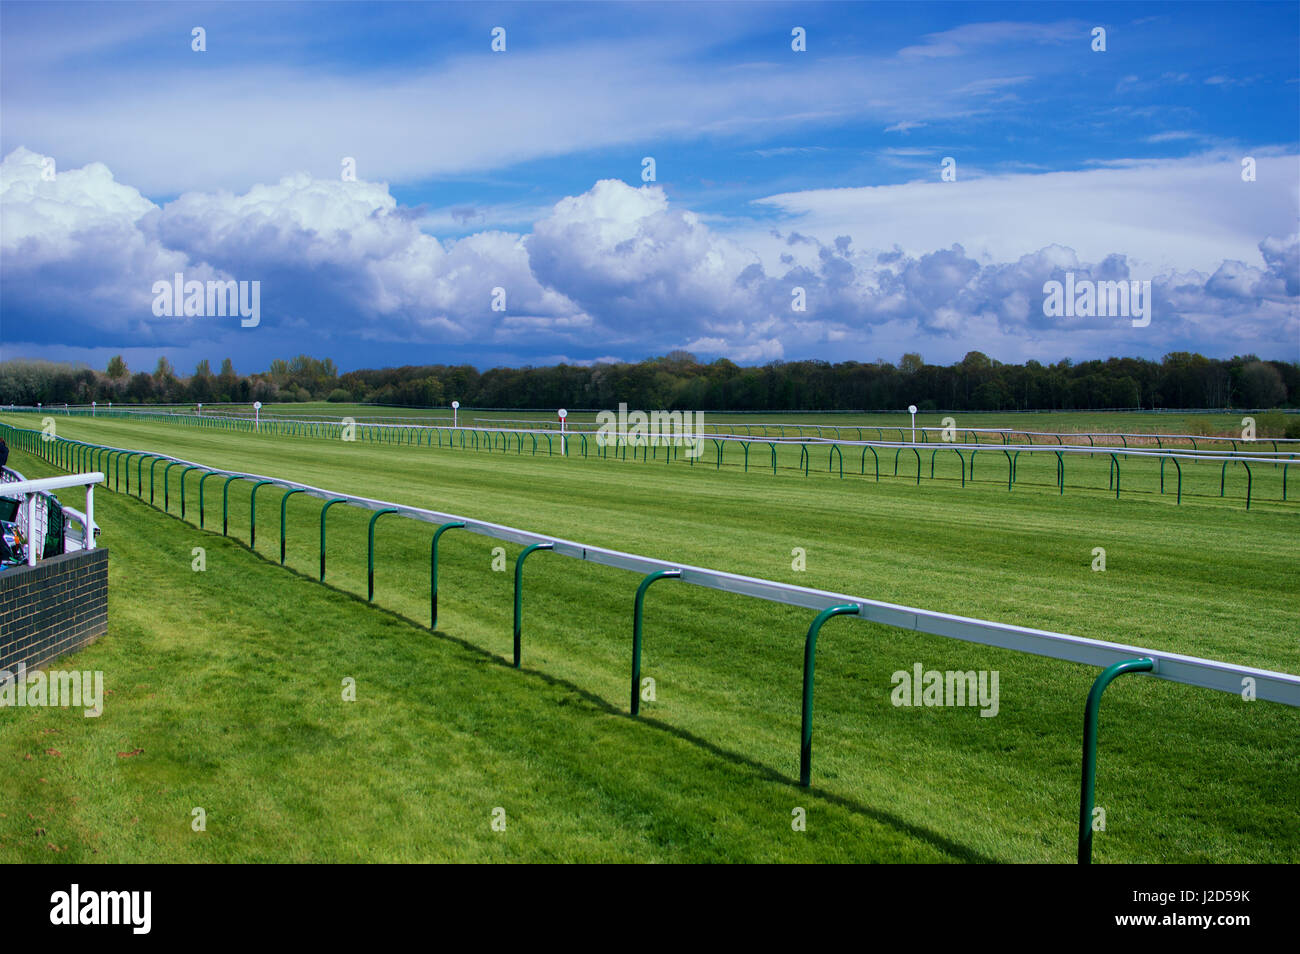 A Horse Race Track on a sunny day - Stock Image